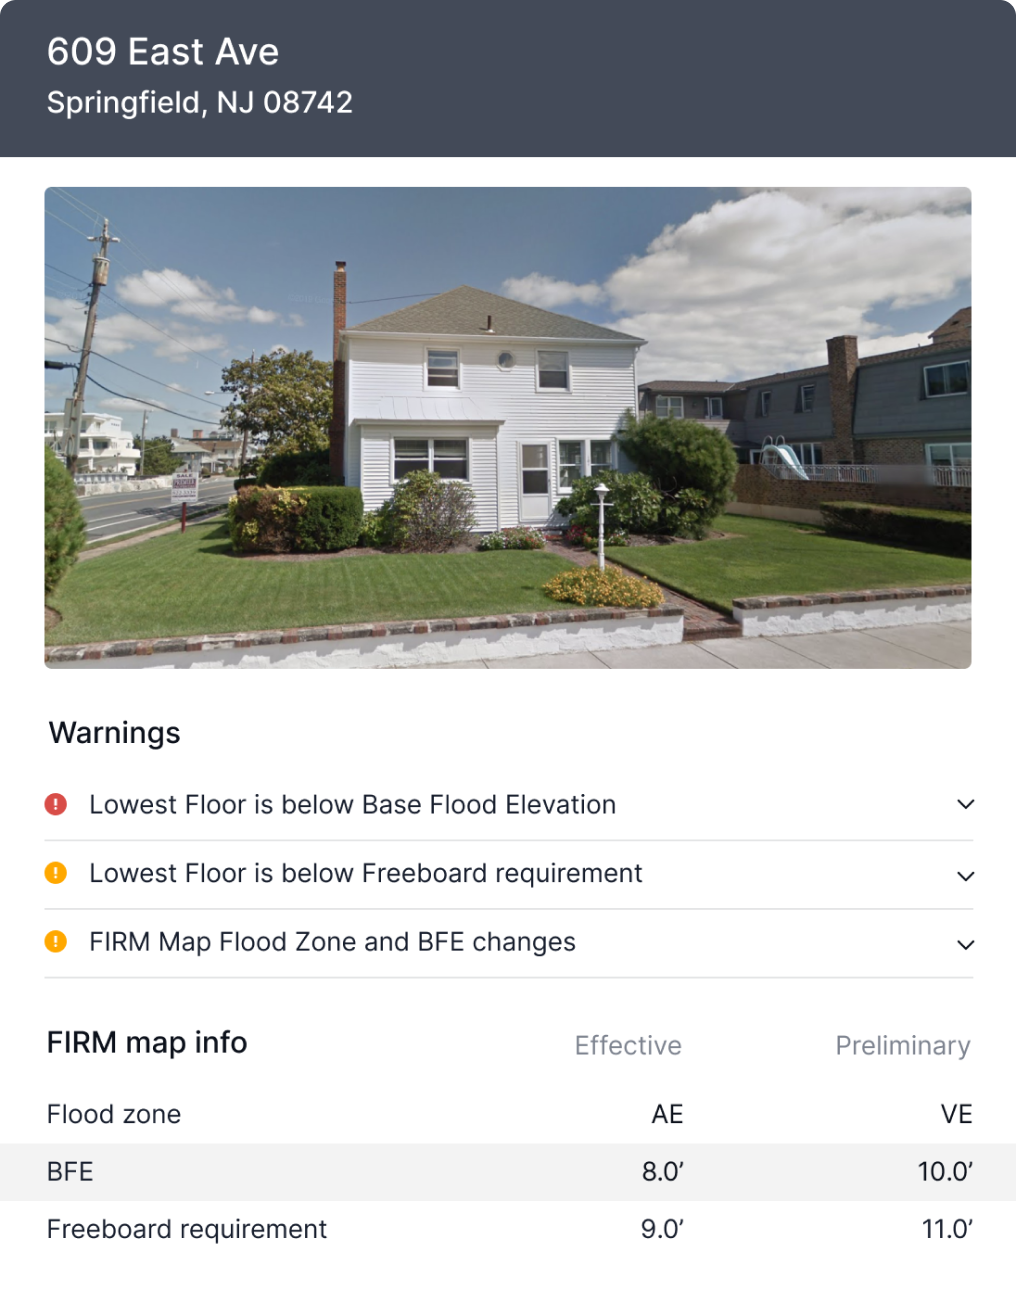 Forerunner Product - Property Info Panel